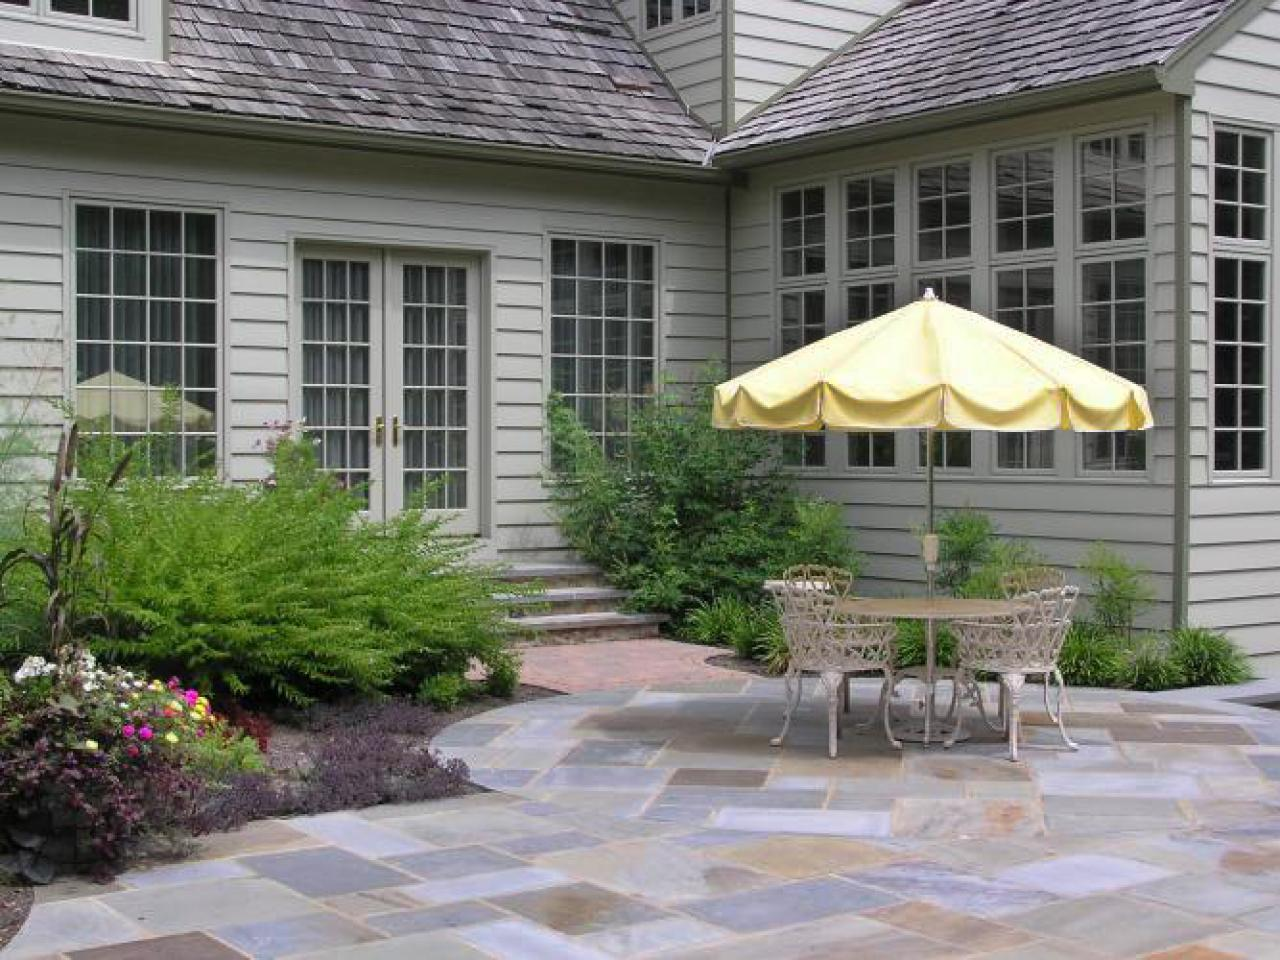 Planning a Patio: Things to Consider | HGTV on Curved Patio Ideas id=76587